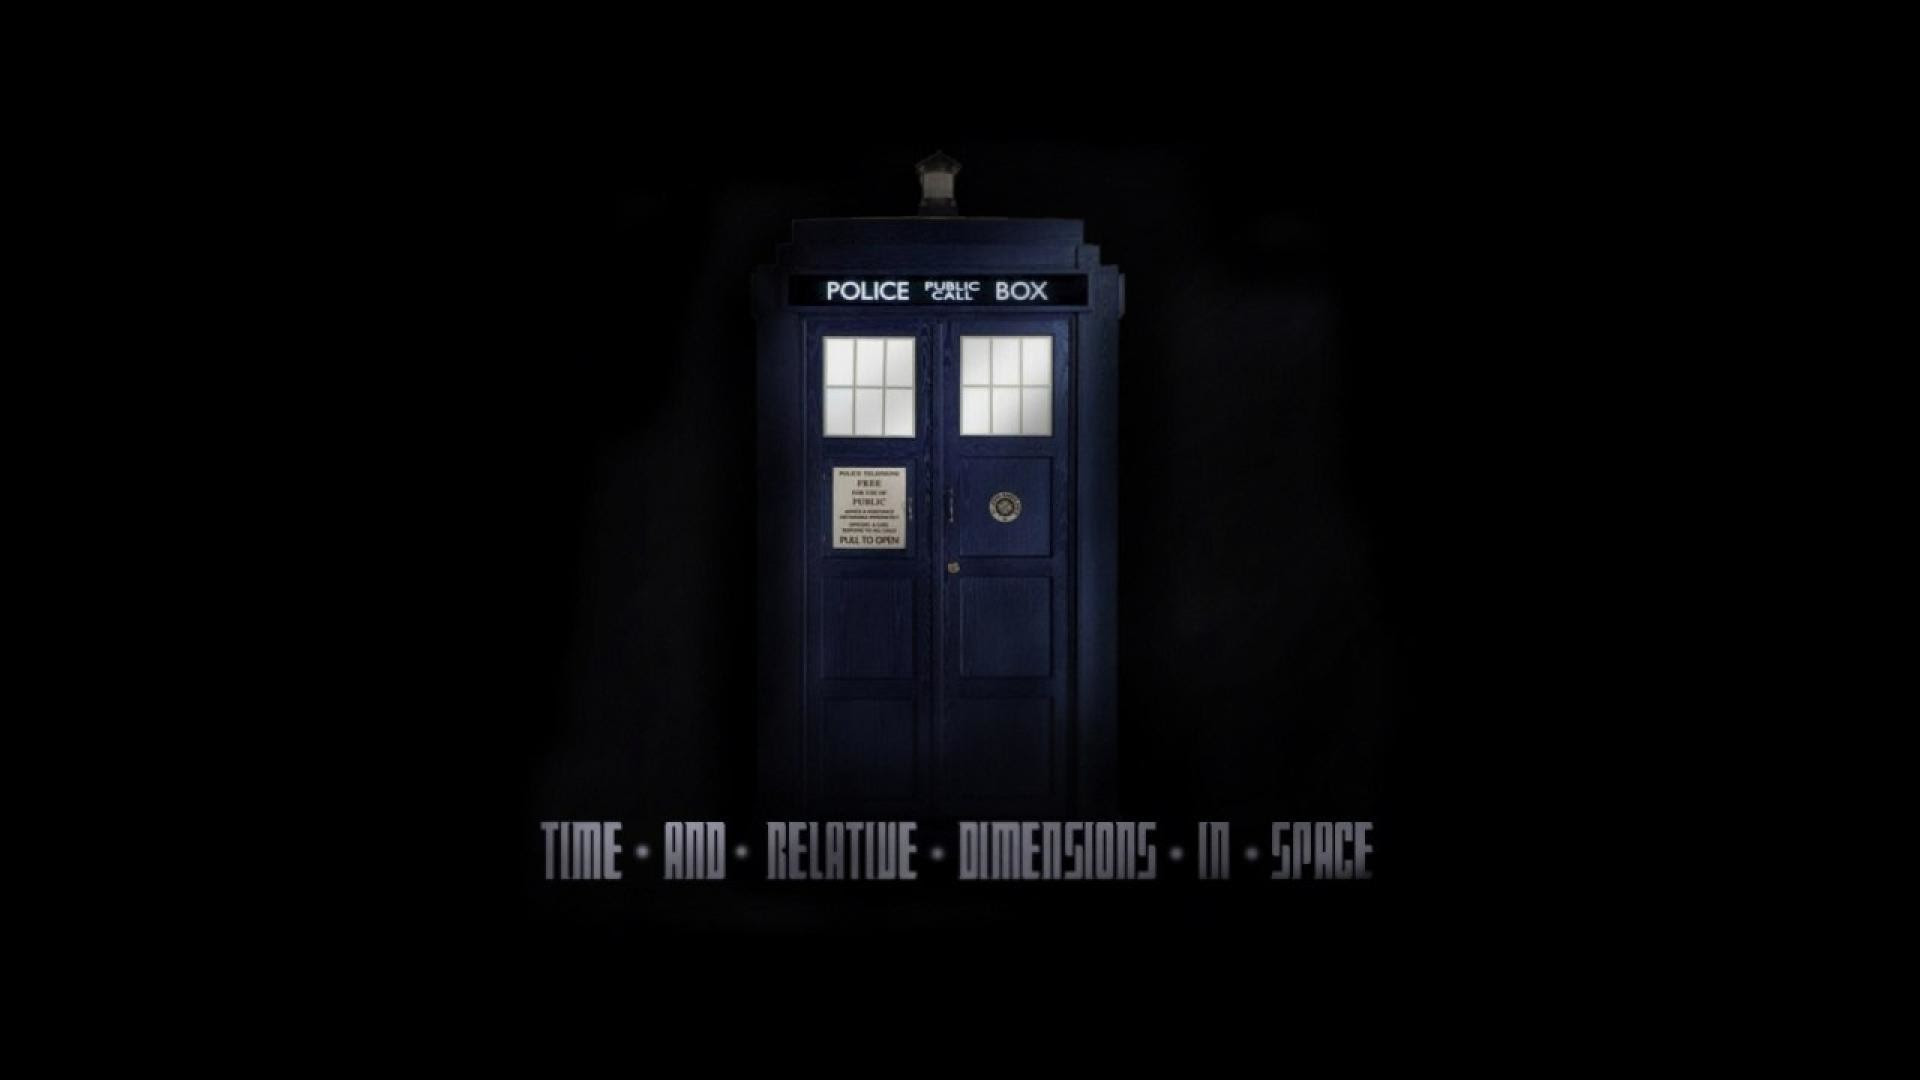 Doctor Who Hd Wallpaper 1920x1080 58 Images